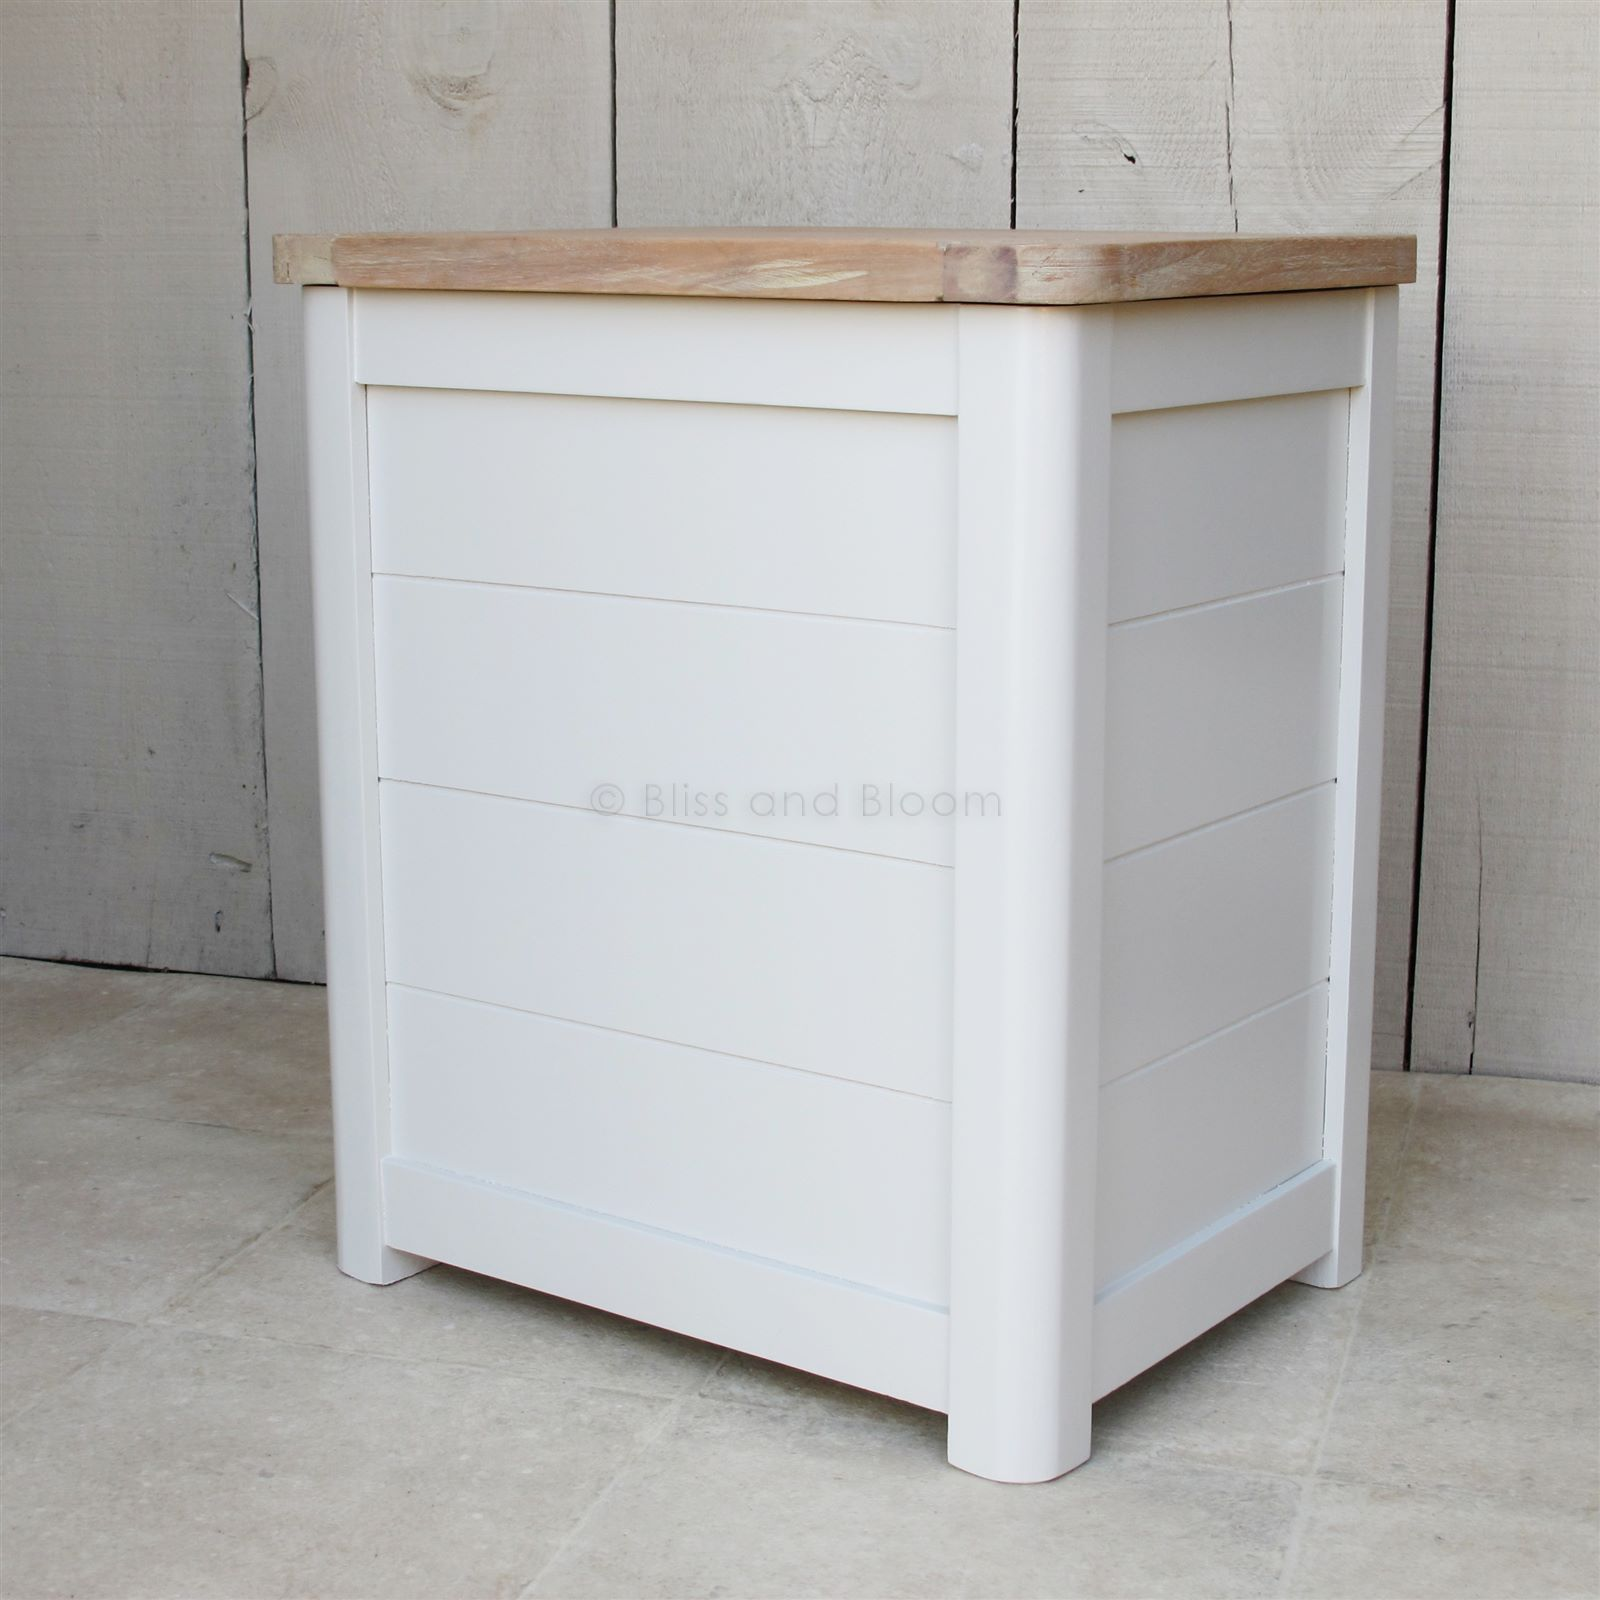 Beautiful Wooden Laundry Bin Painted Antique White With A Gorgeous Top Comes In Two Sizes From Www Blissandbloom Co Uk